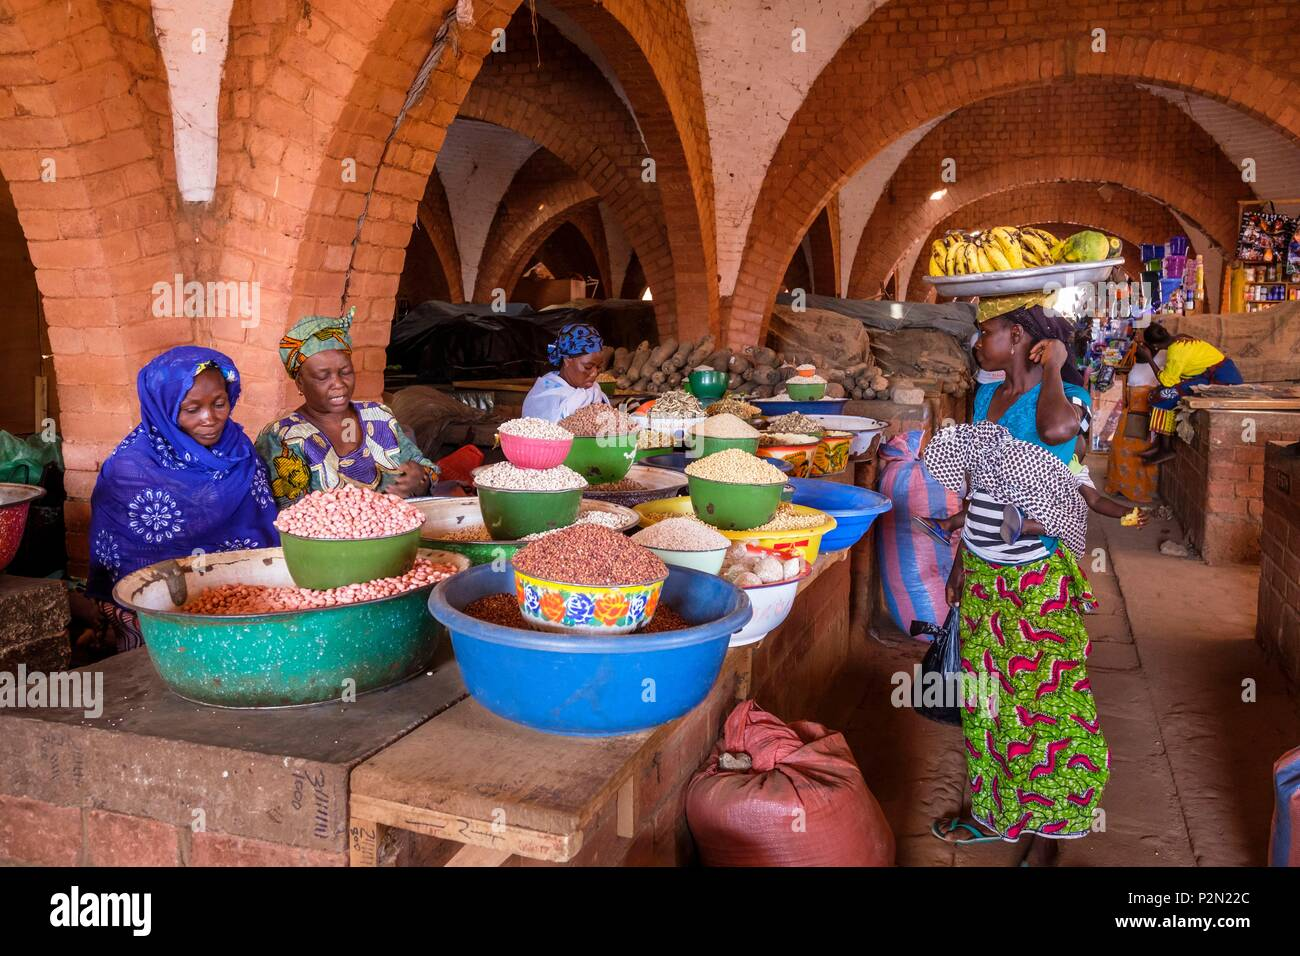 Burkina Faso, Boulkiemdé province, Koudougou, the central market, designed by the Swiss Agency for Development and Cooperation (SDC), allowing development of innovative construction techniques and practical training of the local masons - Stock Image